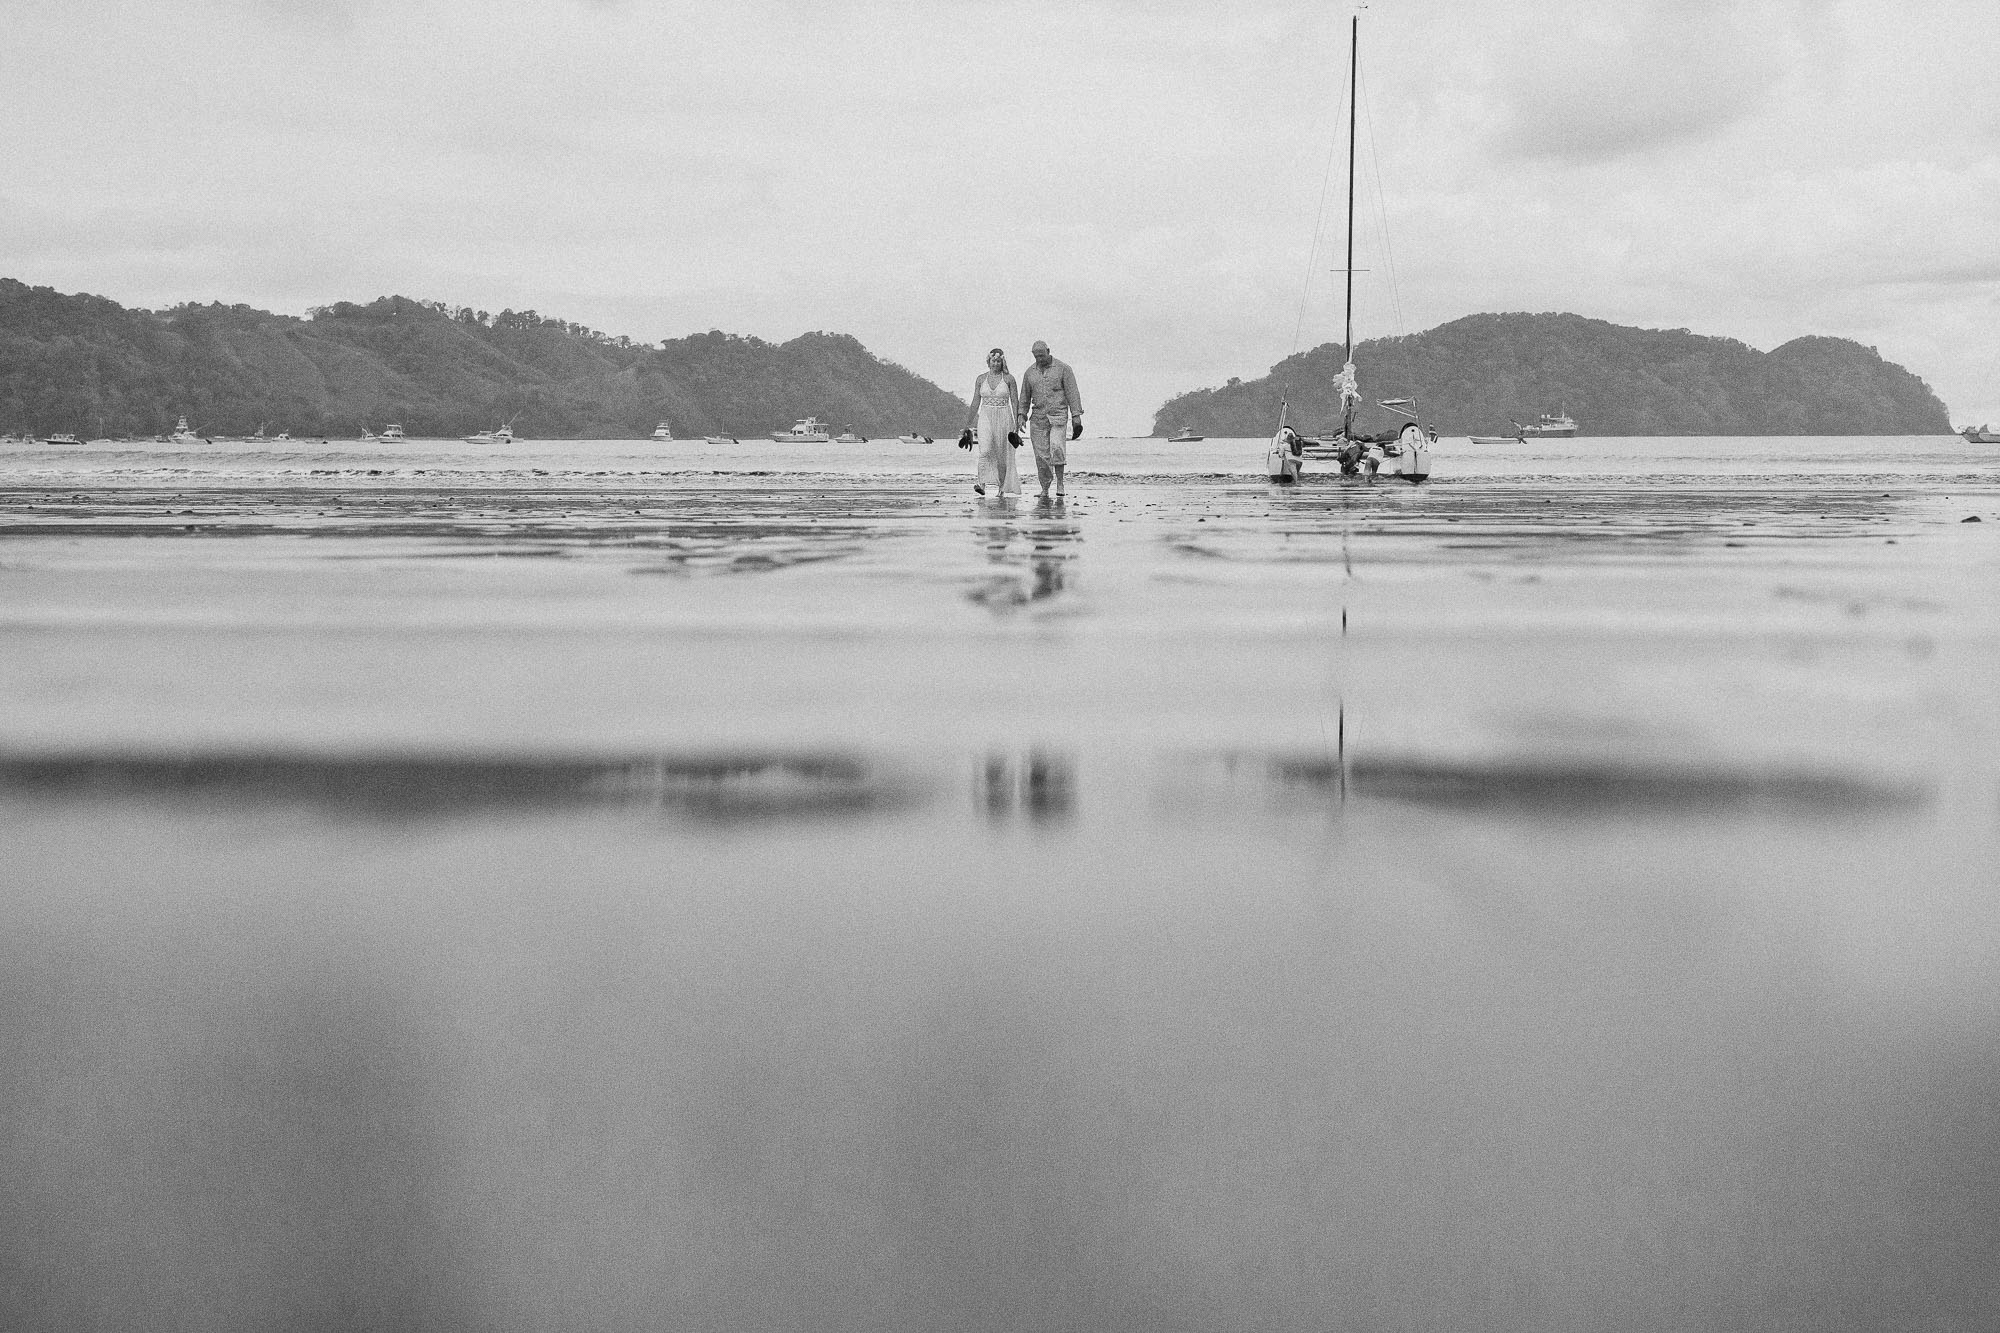 B&W photo of destination wedding couple with the wedding boat in the background.